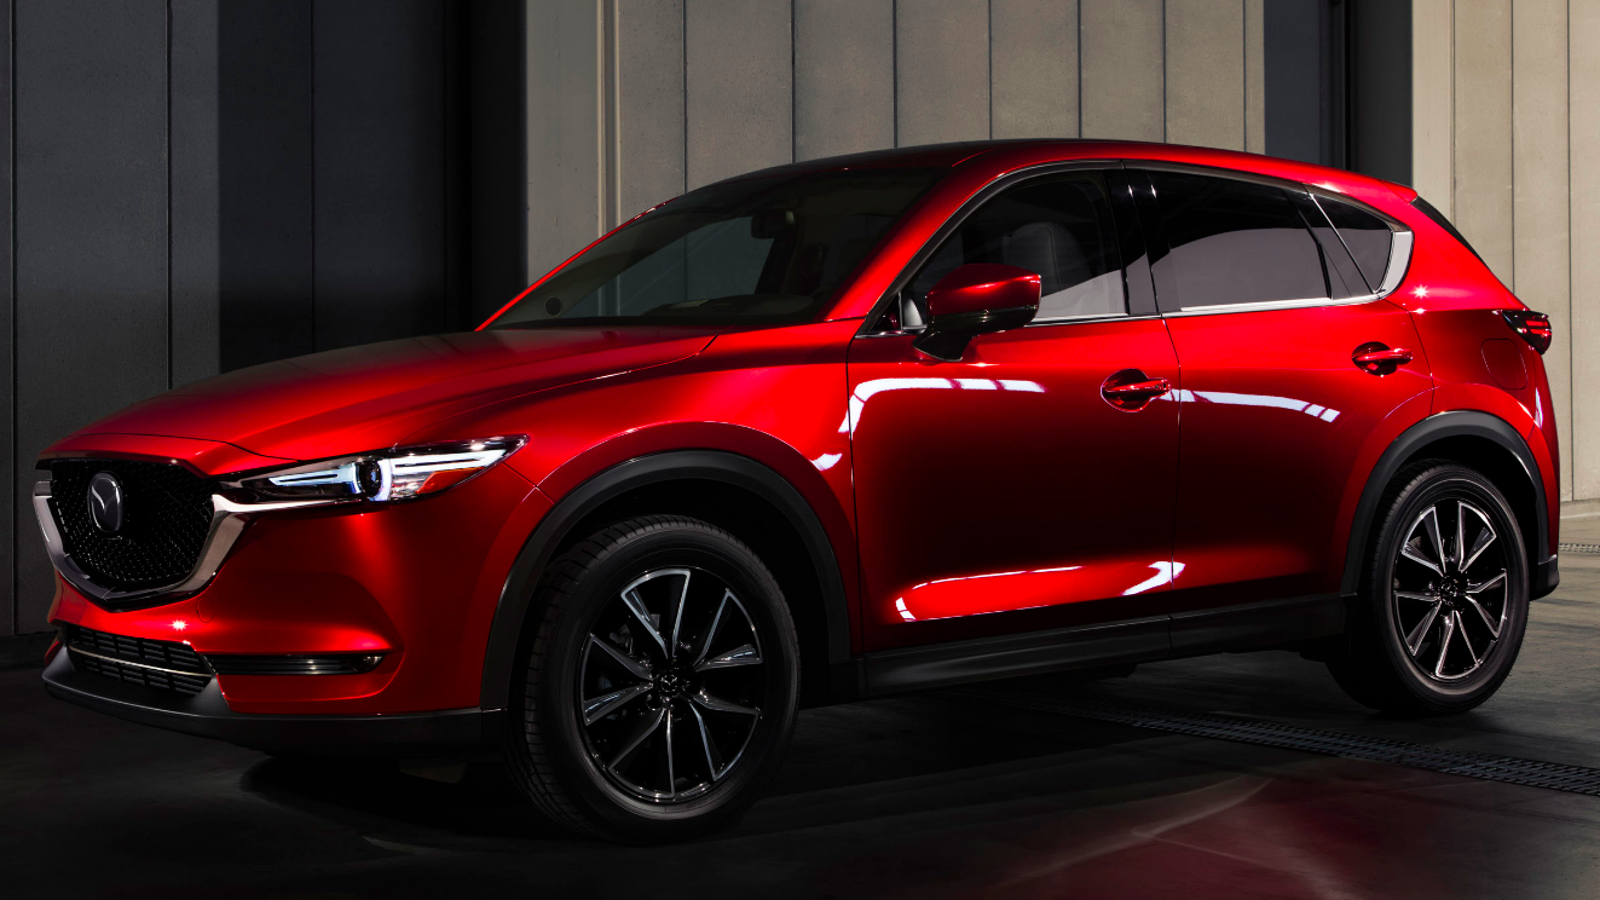 epa rates the mazda cx 5 diesel at up to 29 mpg combined. Black Bedroom Furniture Sets. Home Design Ideas